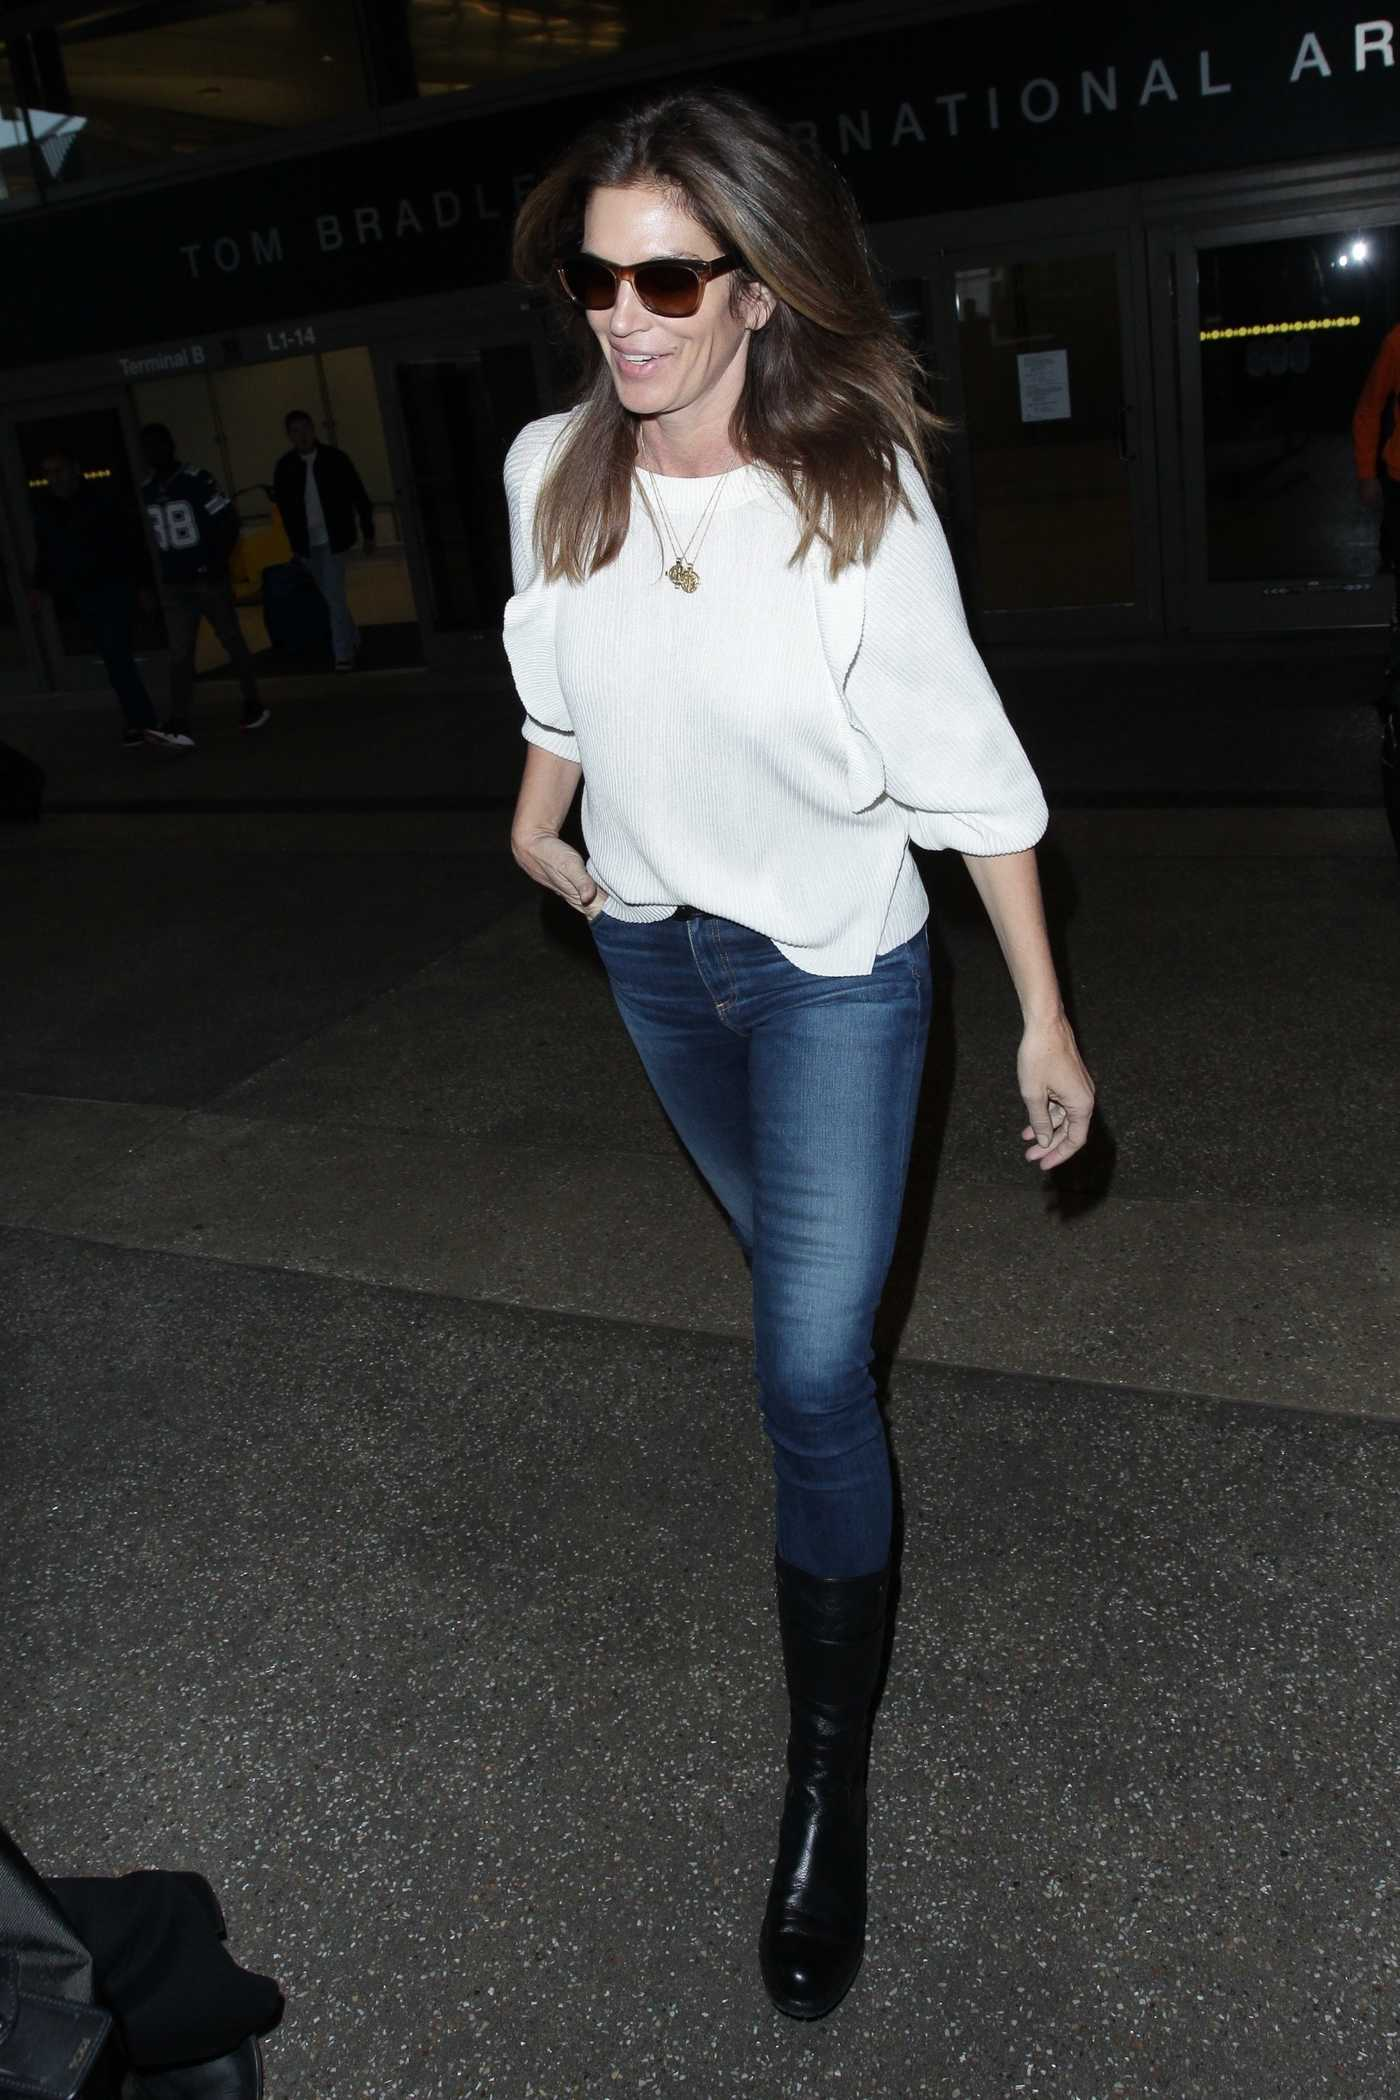 Cindy Crawford in a White Blouse Arrives at LAX Airport in Los Angeles 12/11/2018